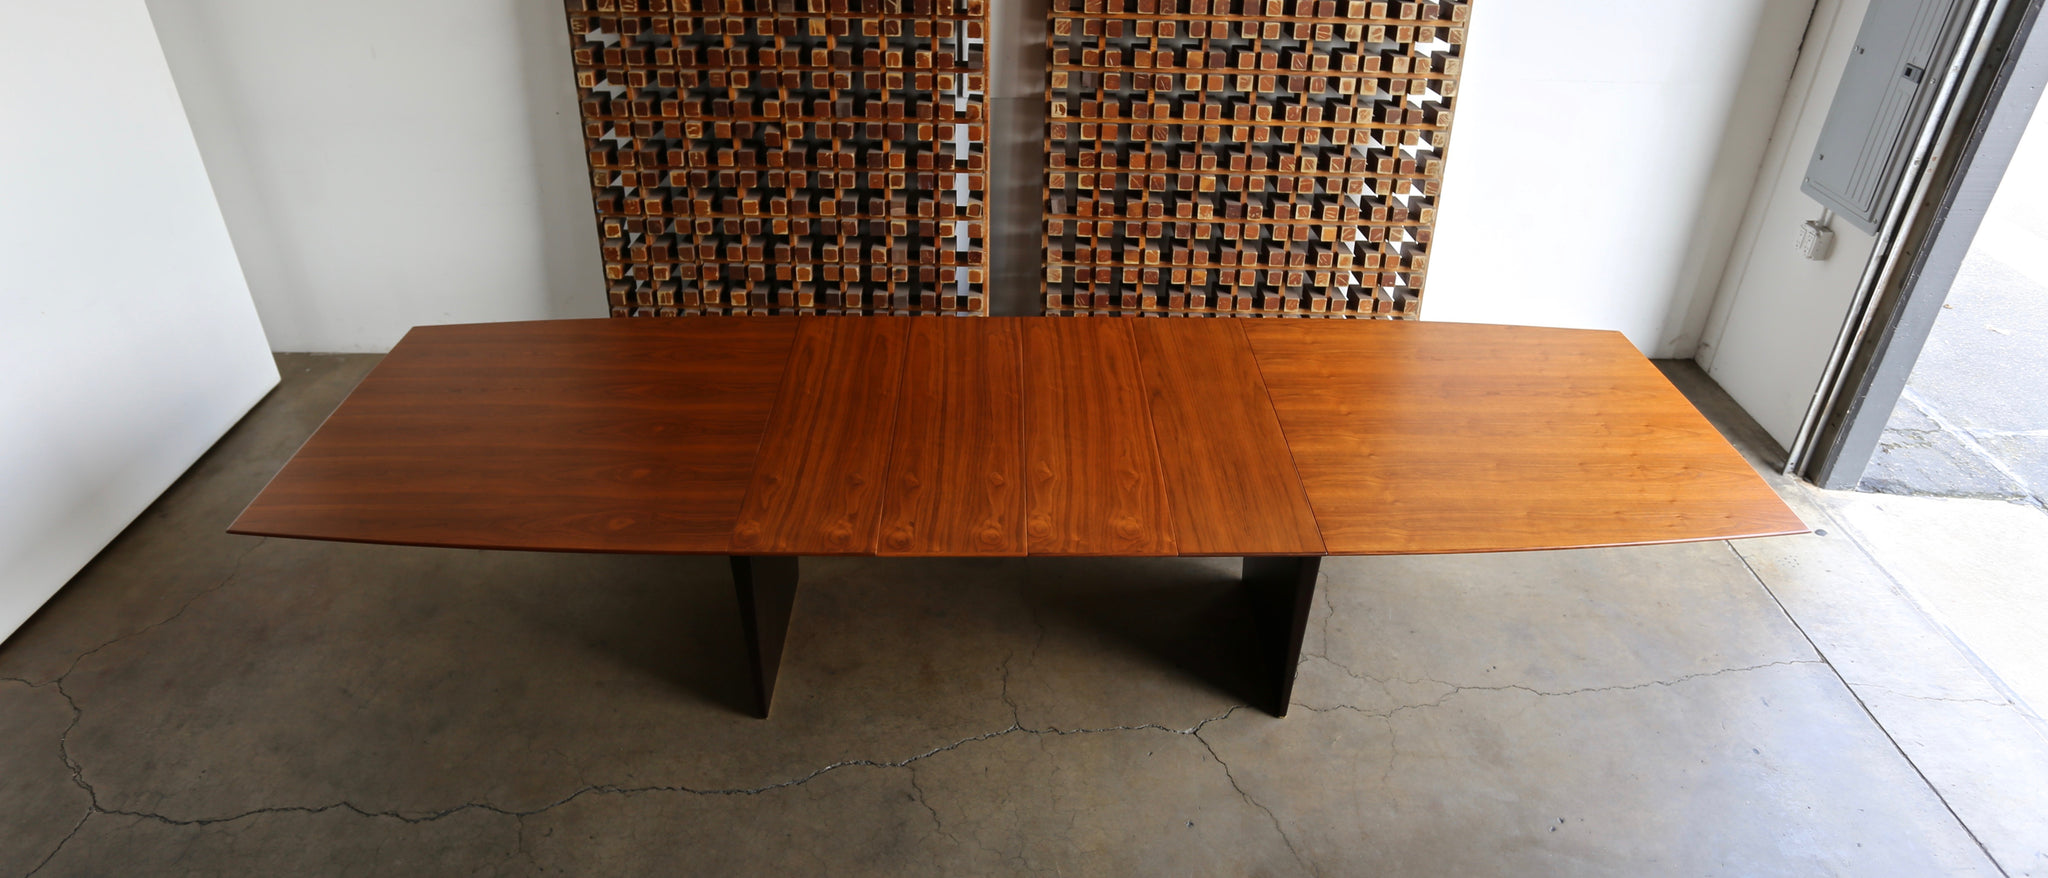 = SOLD = Edward Wormley Dining Table model 5460 for Dunbar circa 1954